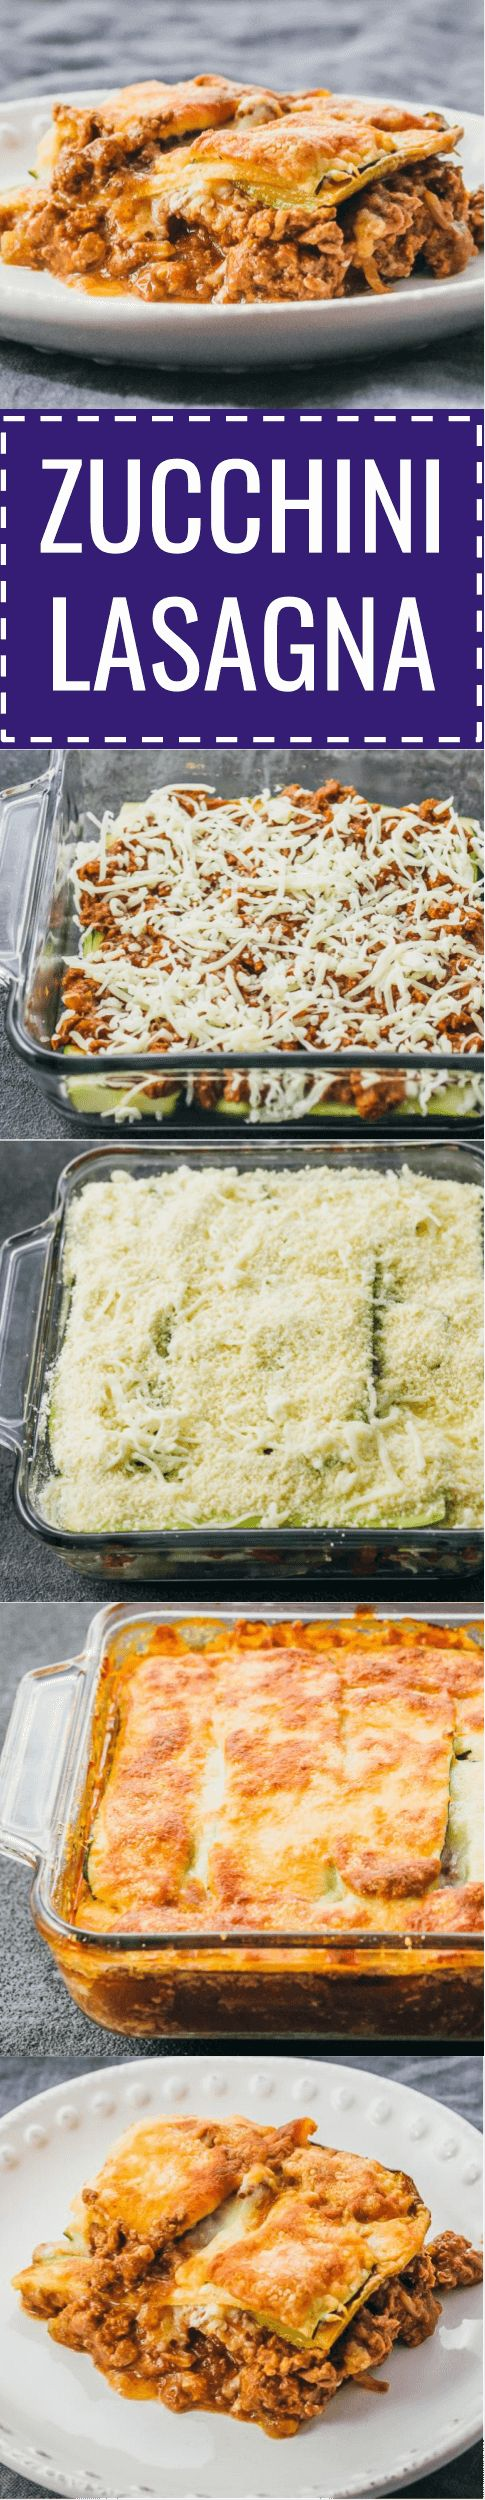 This easy zucchini lasagna is a great low carb and healthy alternative to your typical lasagna. keto / low carb / diet / atkins / meals / recipes / easy / dinner / lunch / foods / healthy / gluten free / easy / recipe / healthy / with meat / noodles / best / weight watchers / clean eating / no ricotta / shredded / beef / bake / make ahead / simple / mozzarella / calories / bolognese / roasted / lattice / dinners / dishes / onions #lasagna #healthy #dinner #keto